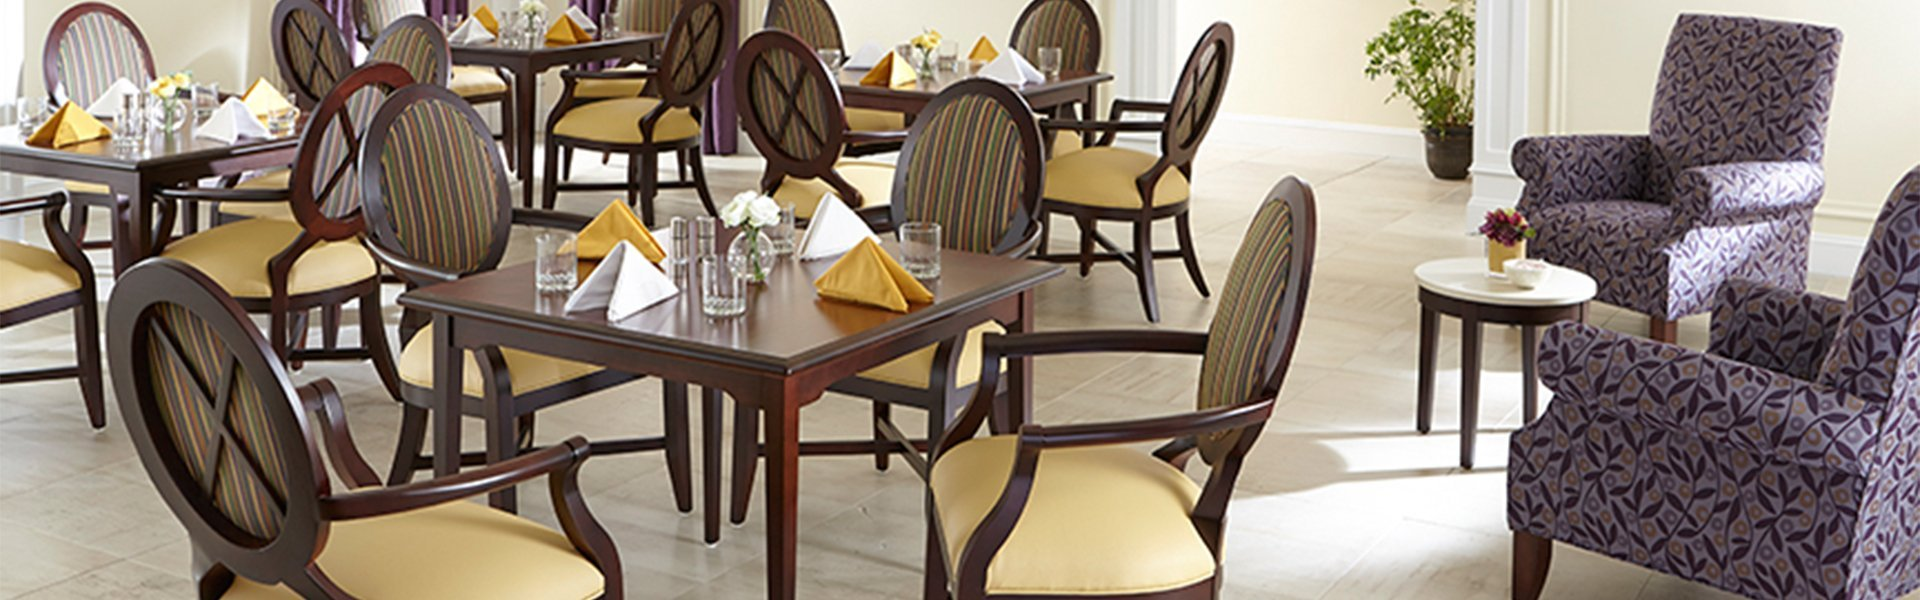 Corilam Regency Dining